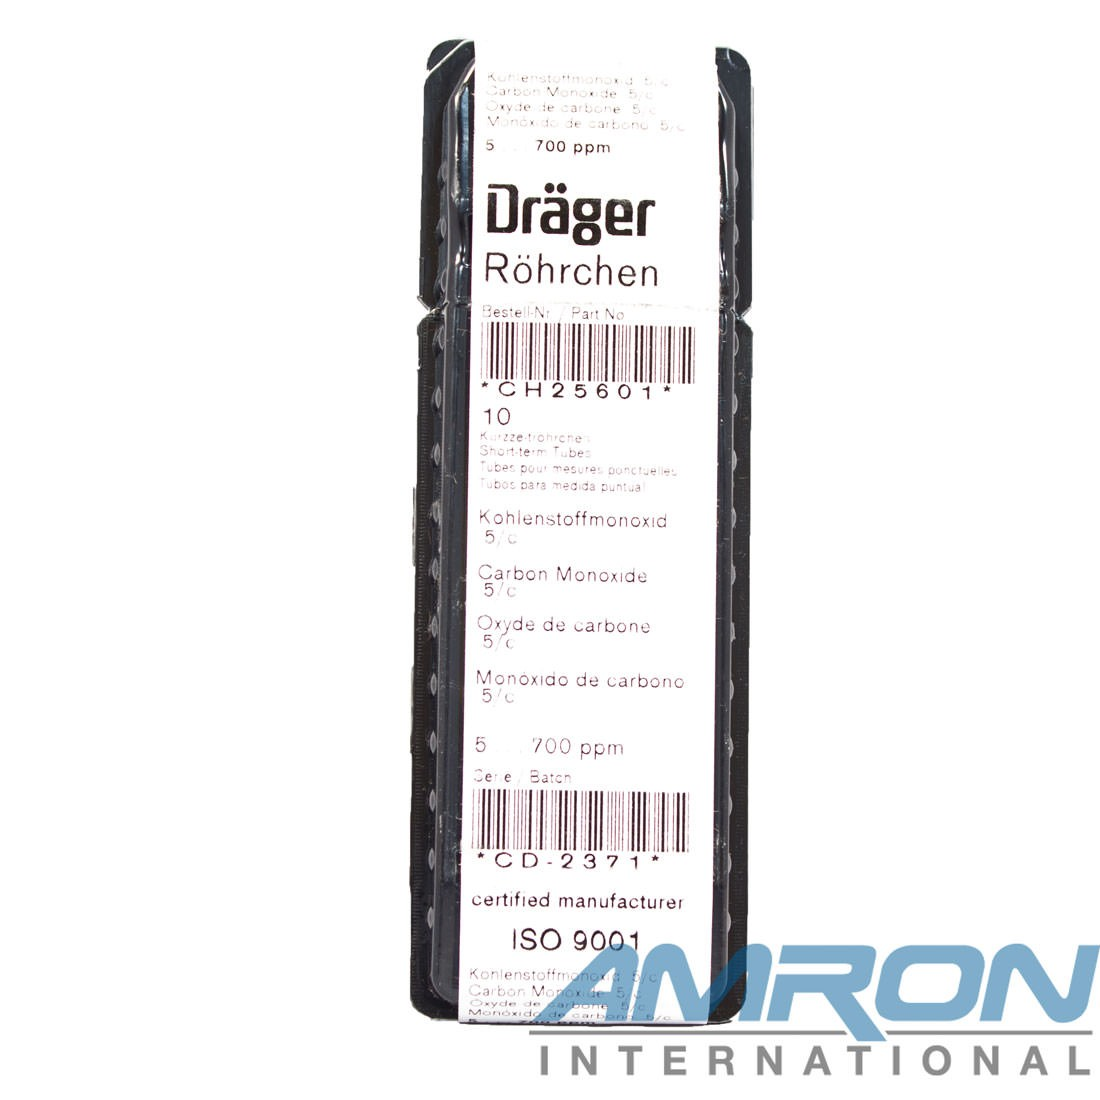 Drager Tube Carbon Monoxide 5/c